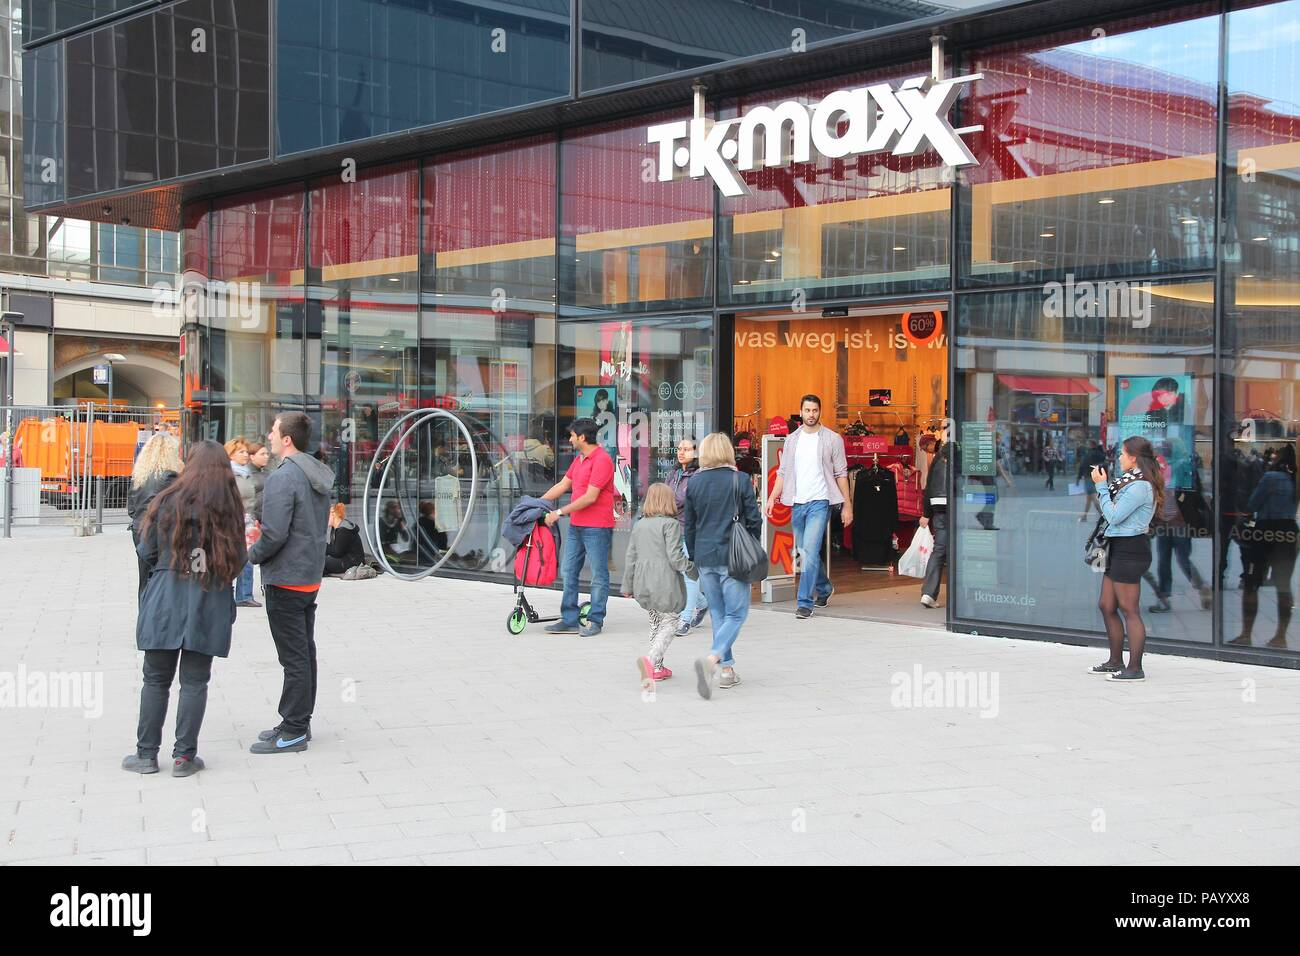 tk maxx shop store stock photos tk maxx shop store stock. Black Bedroom Furniture Sets. Home Design Ideas